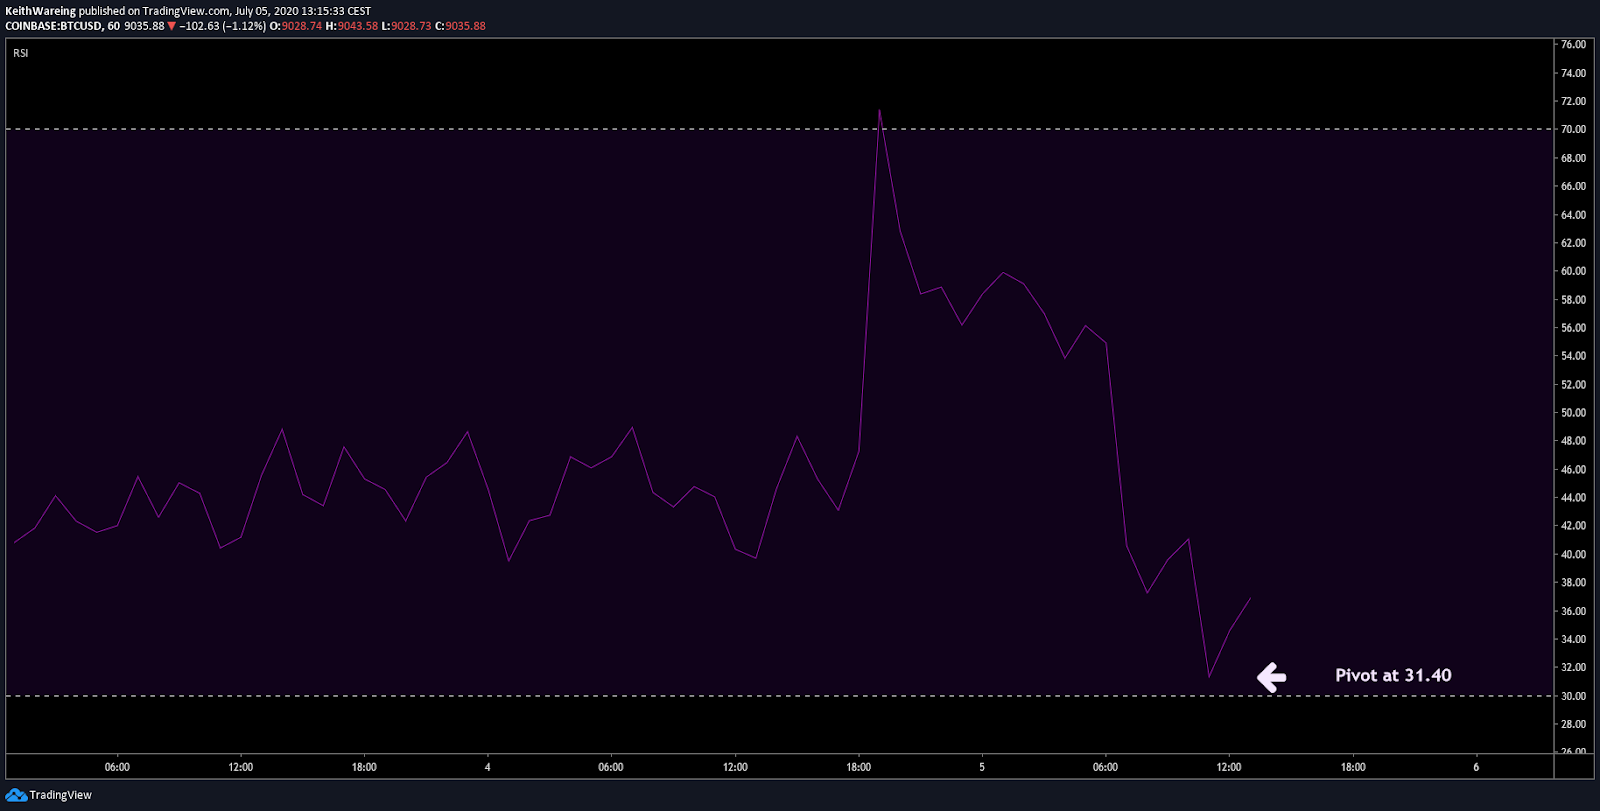 BTC/USD 1-hour RSI chart